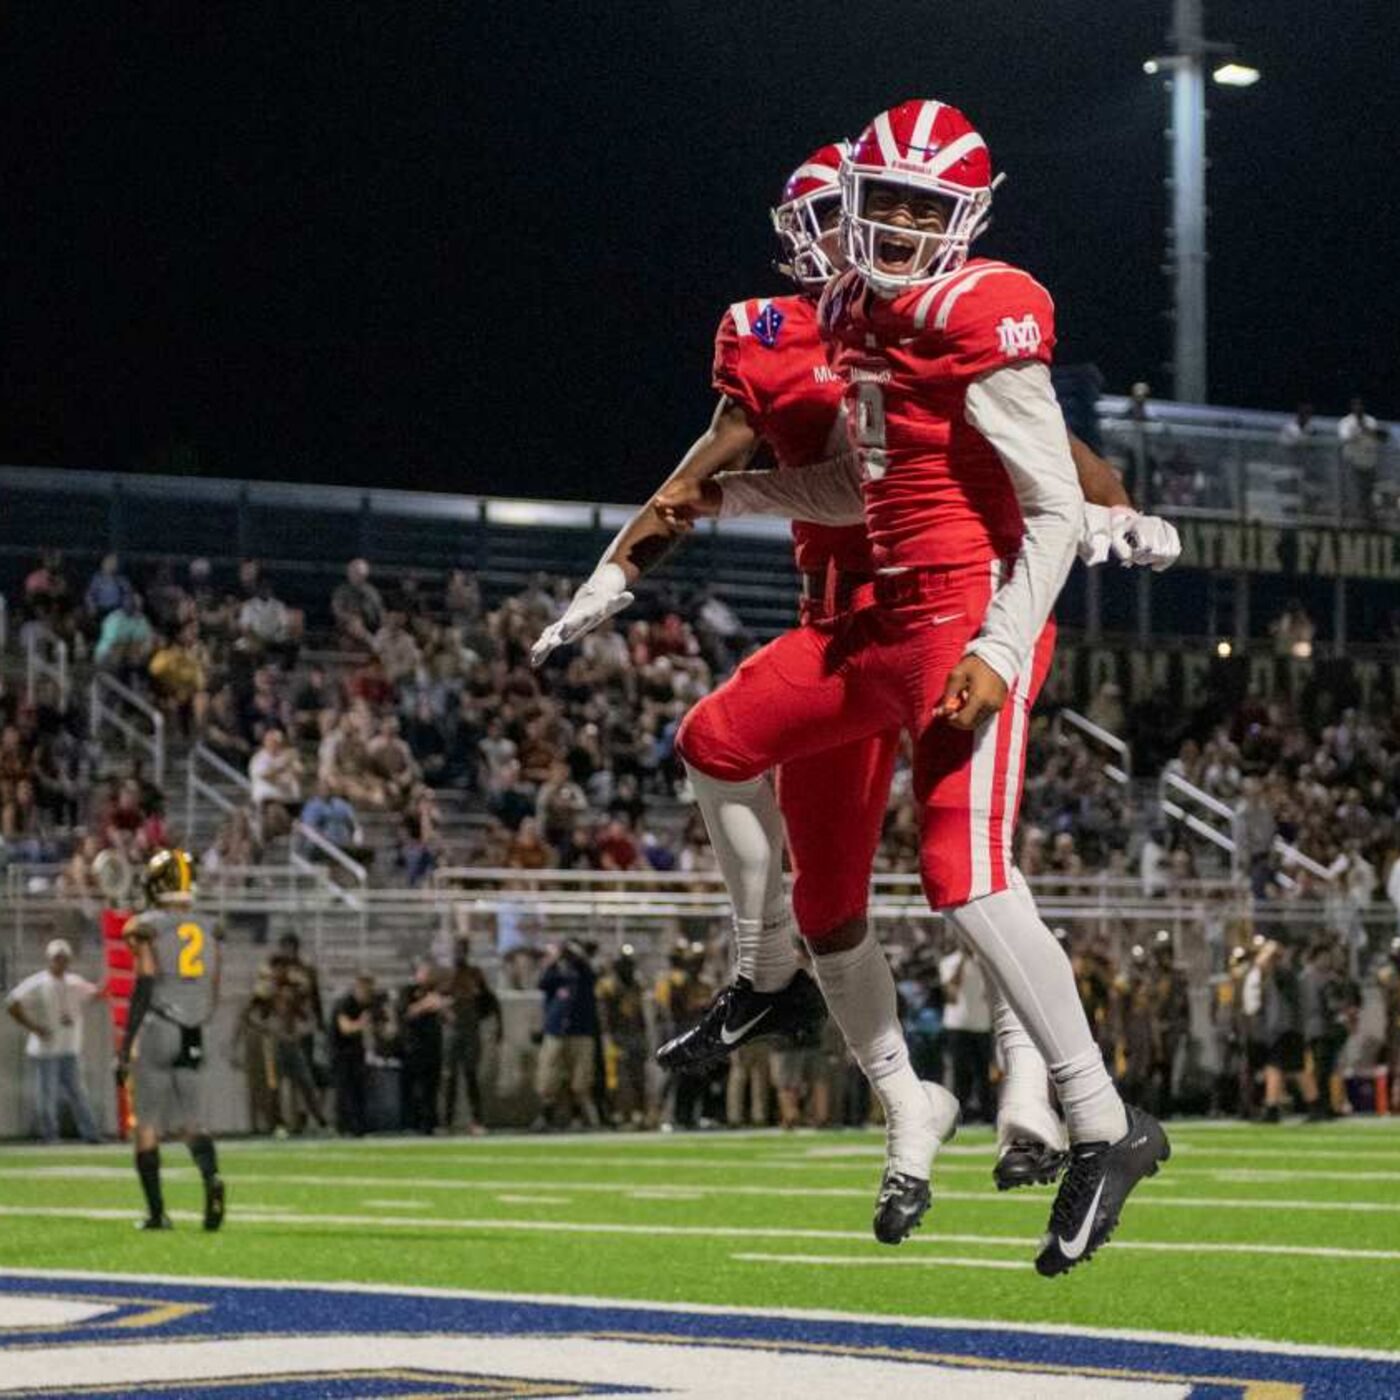 Trinity League Football Podcast '19: Mater Dei-St. Frances analysis, JSerra-Calabasas preview leads Week 4